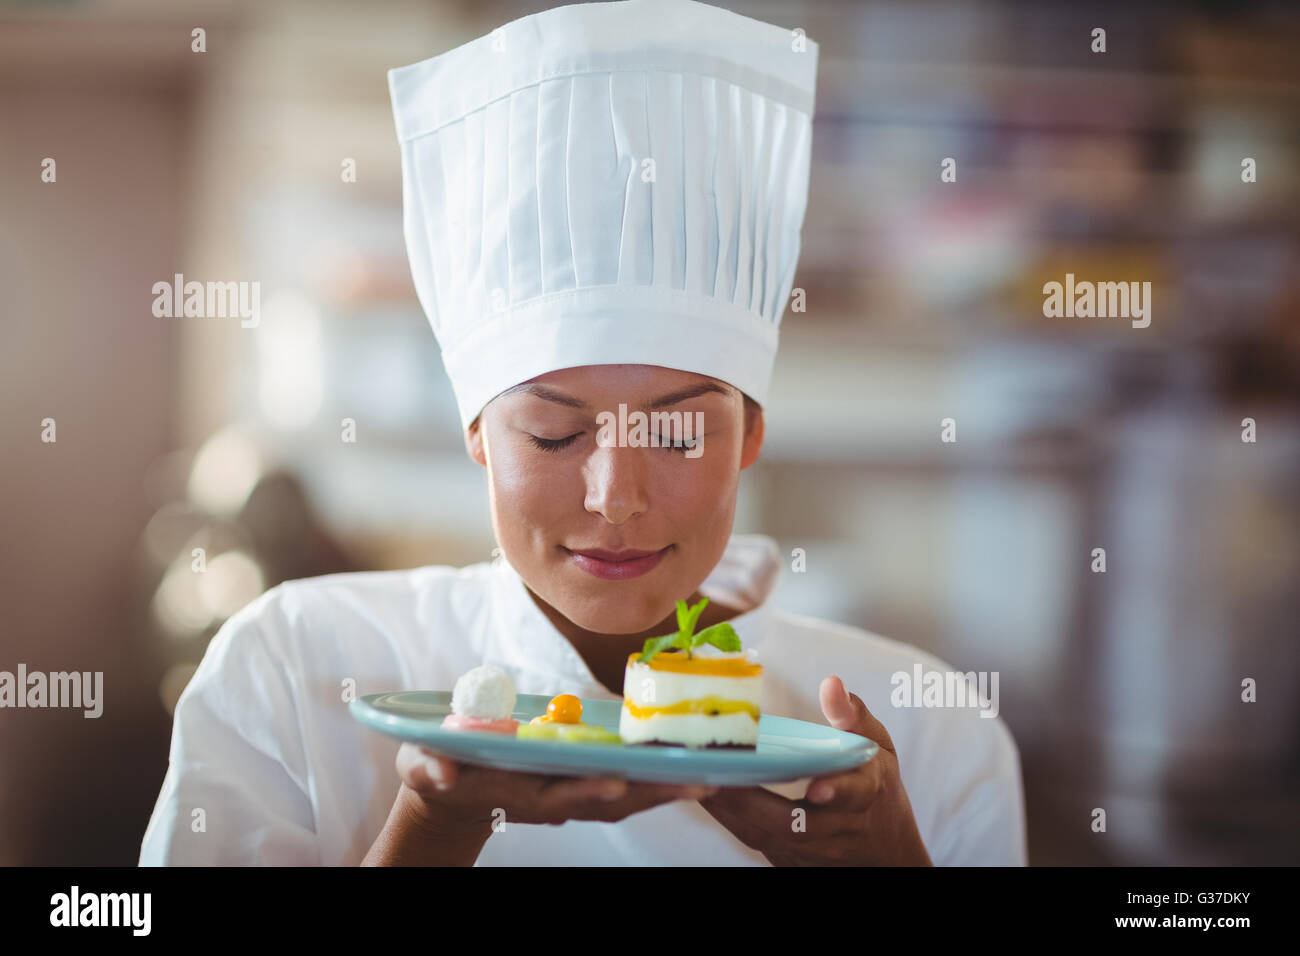 Female chef with eyes closed smelling food - Stock Image